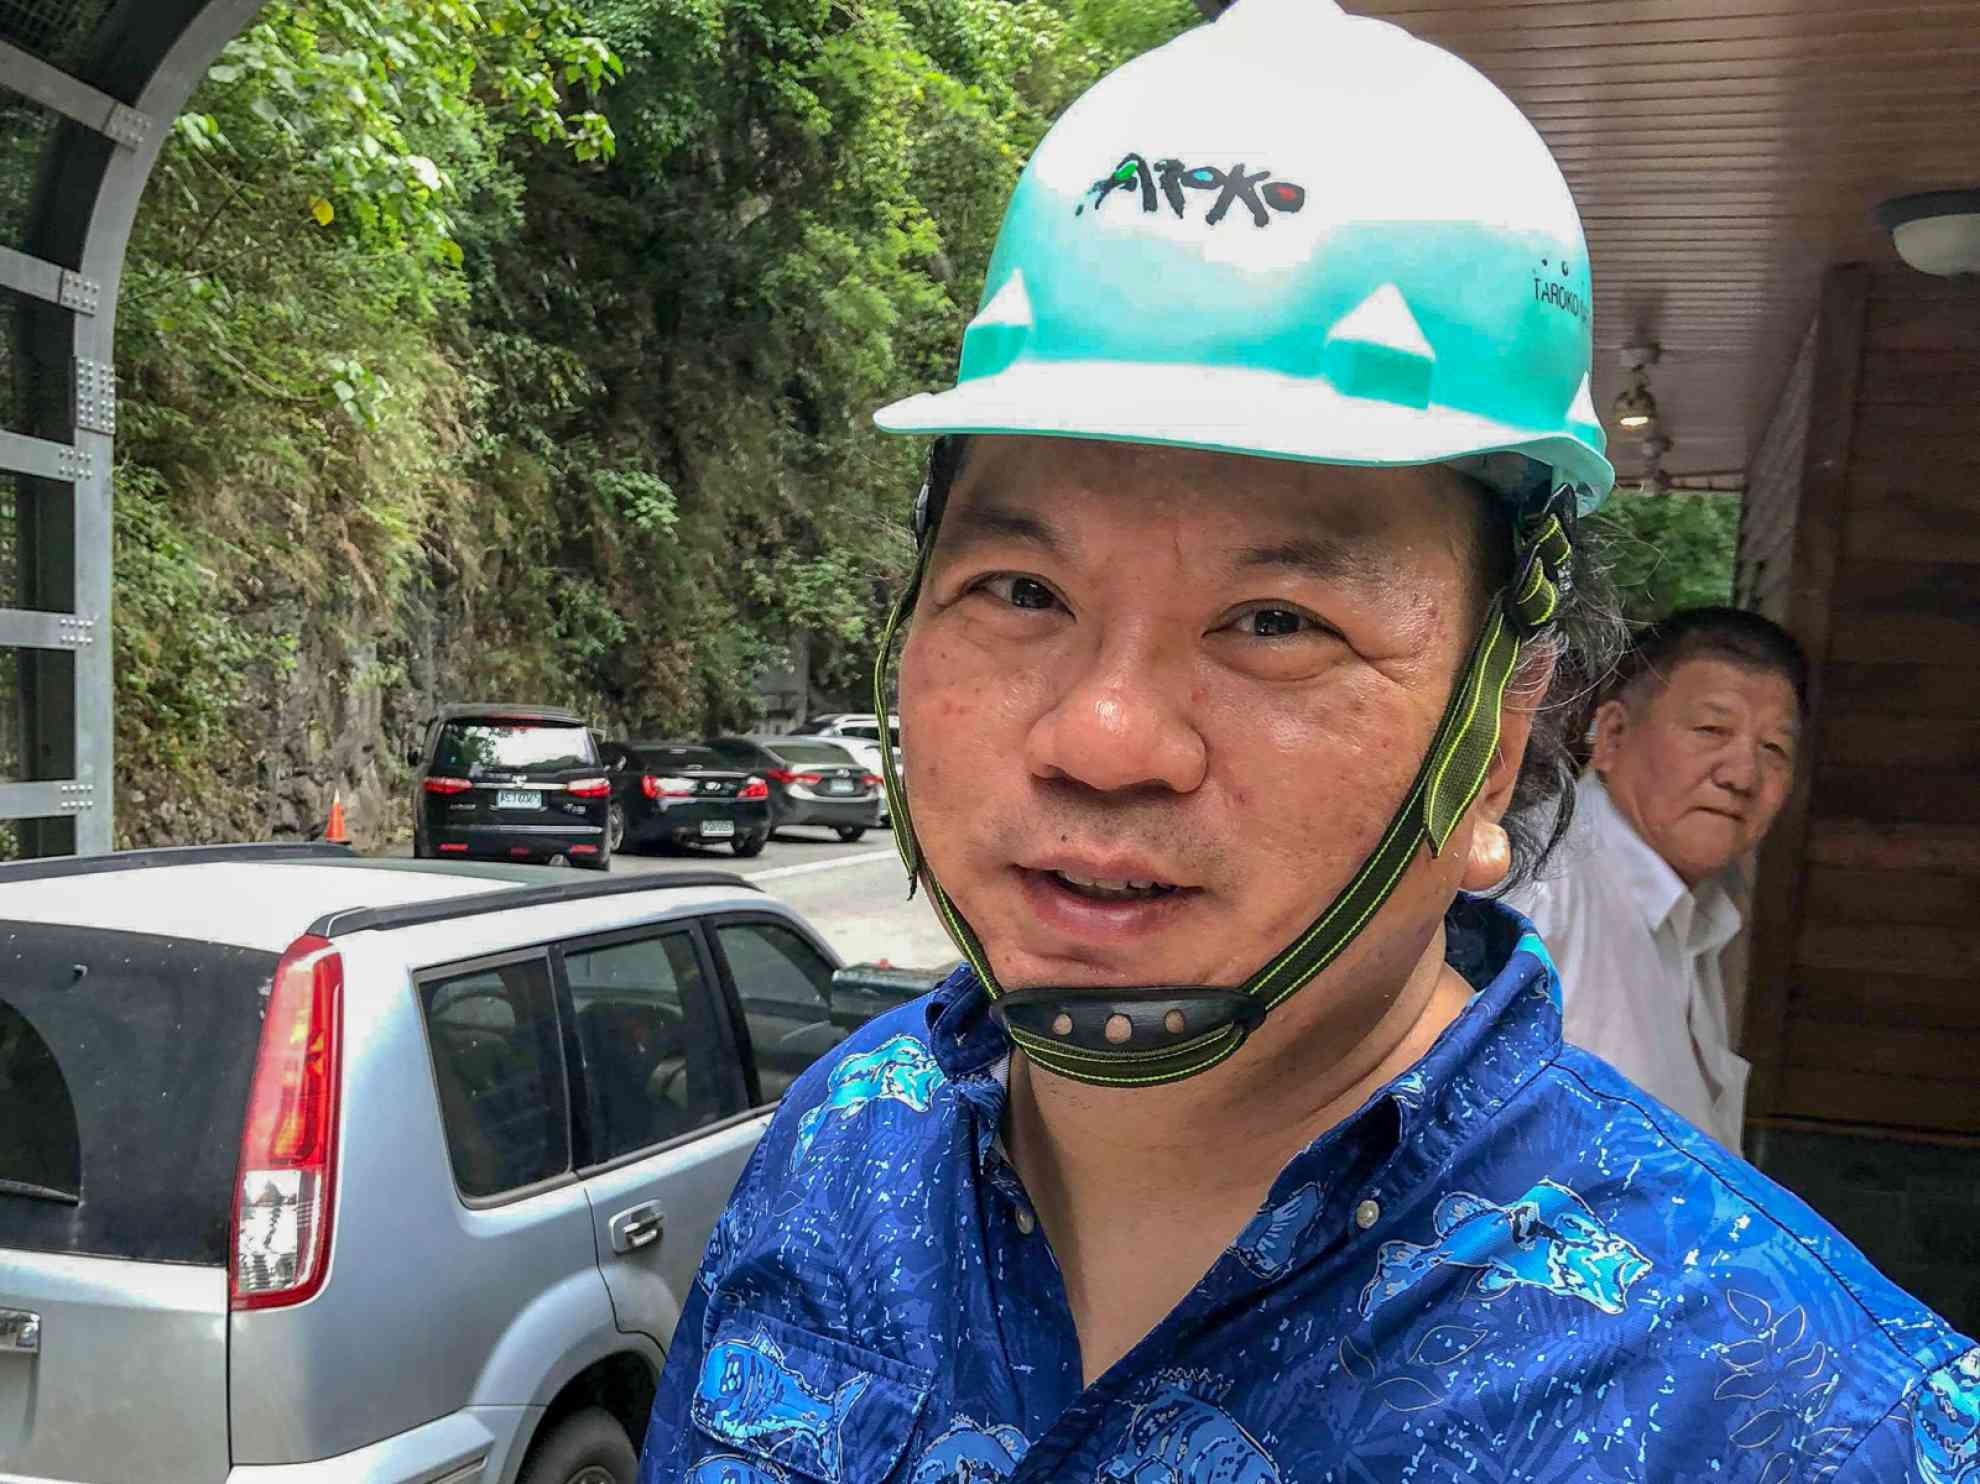 Taroko Gorge Hard Hat